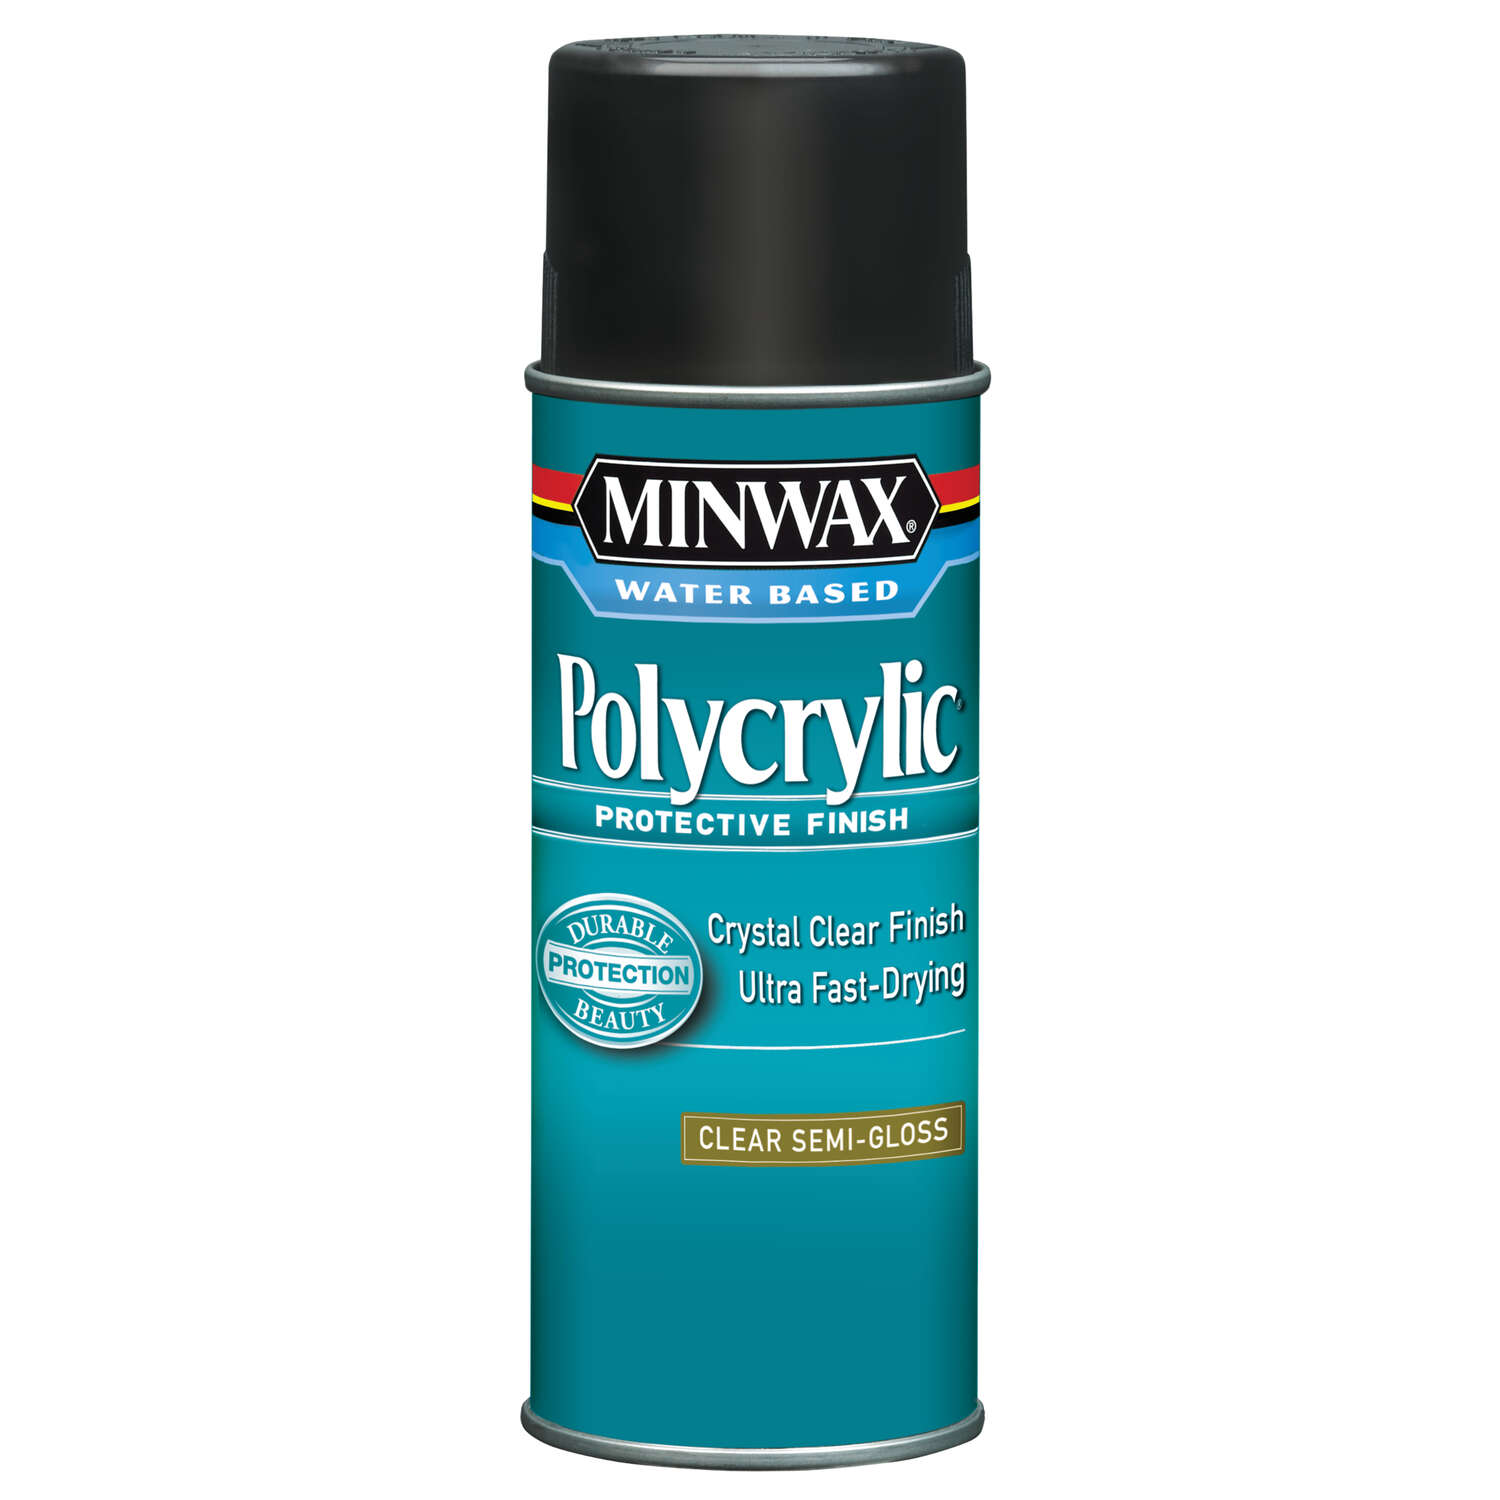 Minwax  Semi-Gloss  Clear  Polycrylic  11.5 oz.